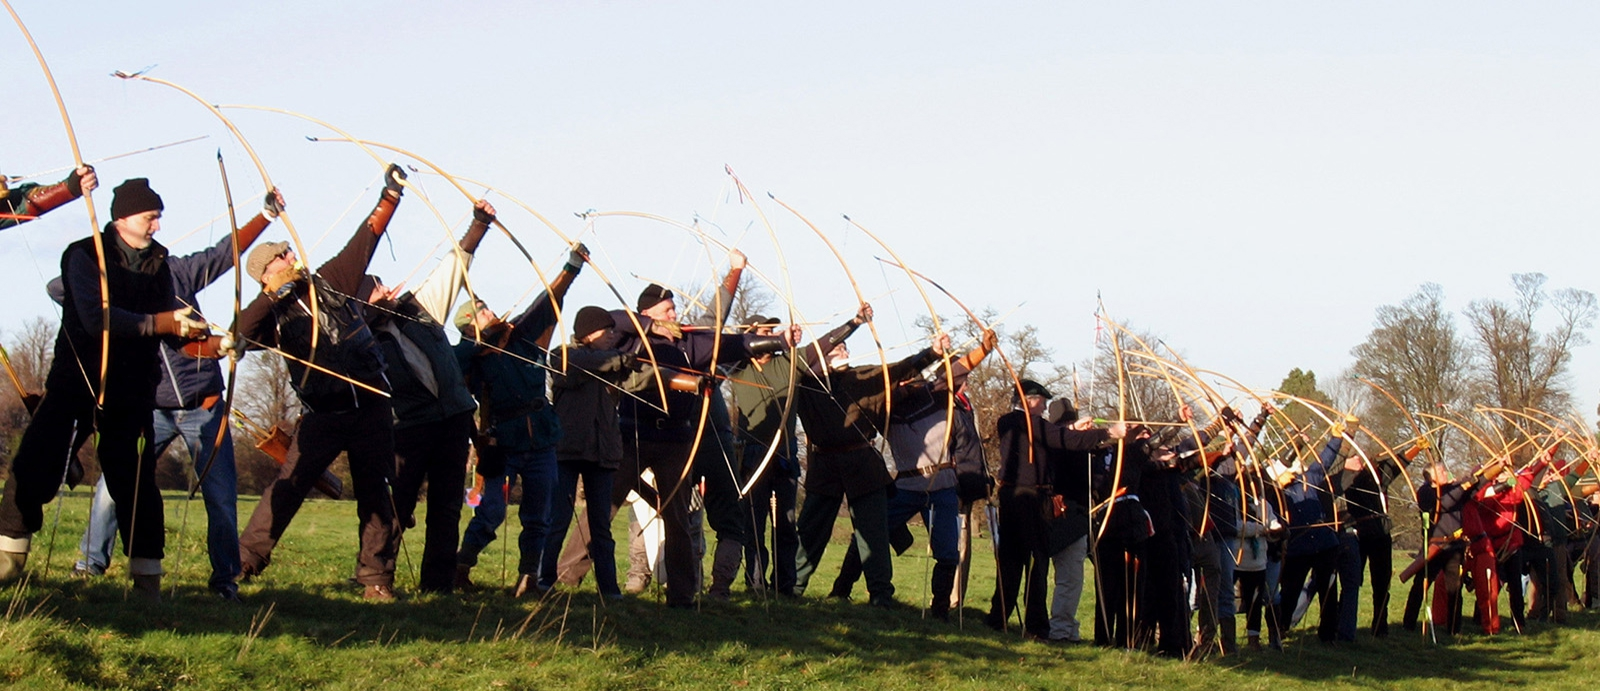 LONGBOW ARCHERS